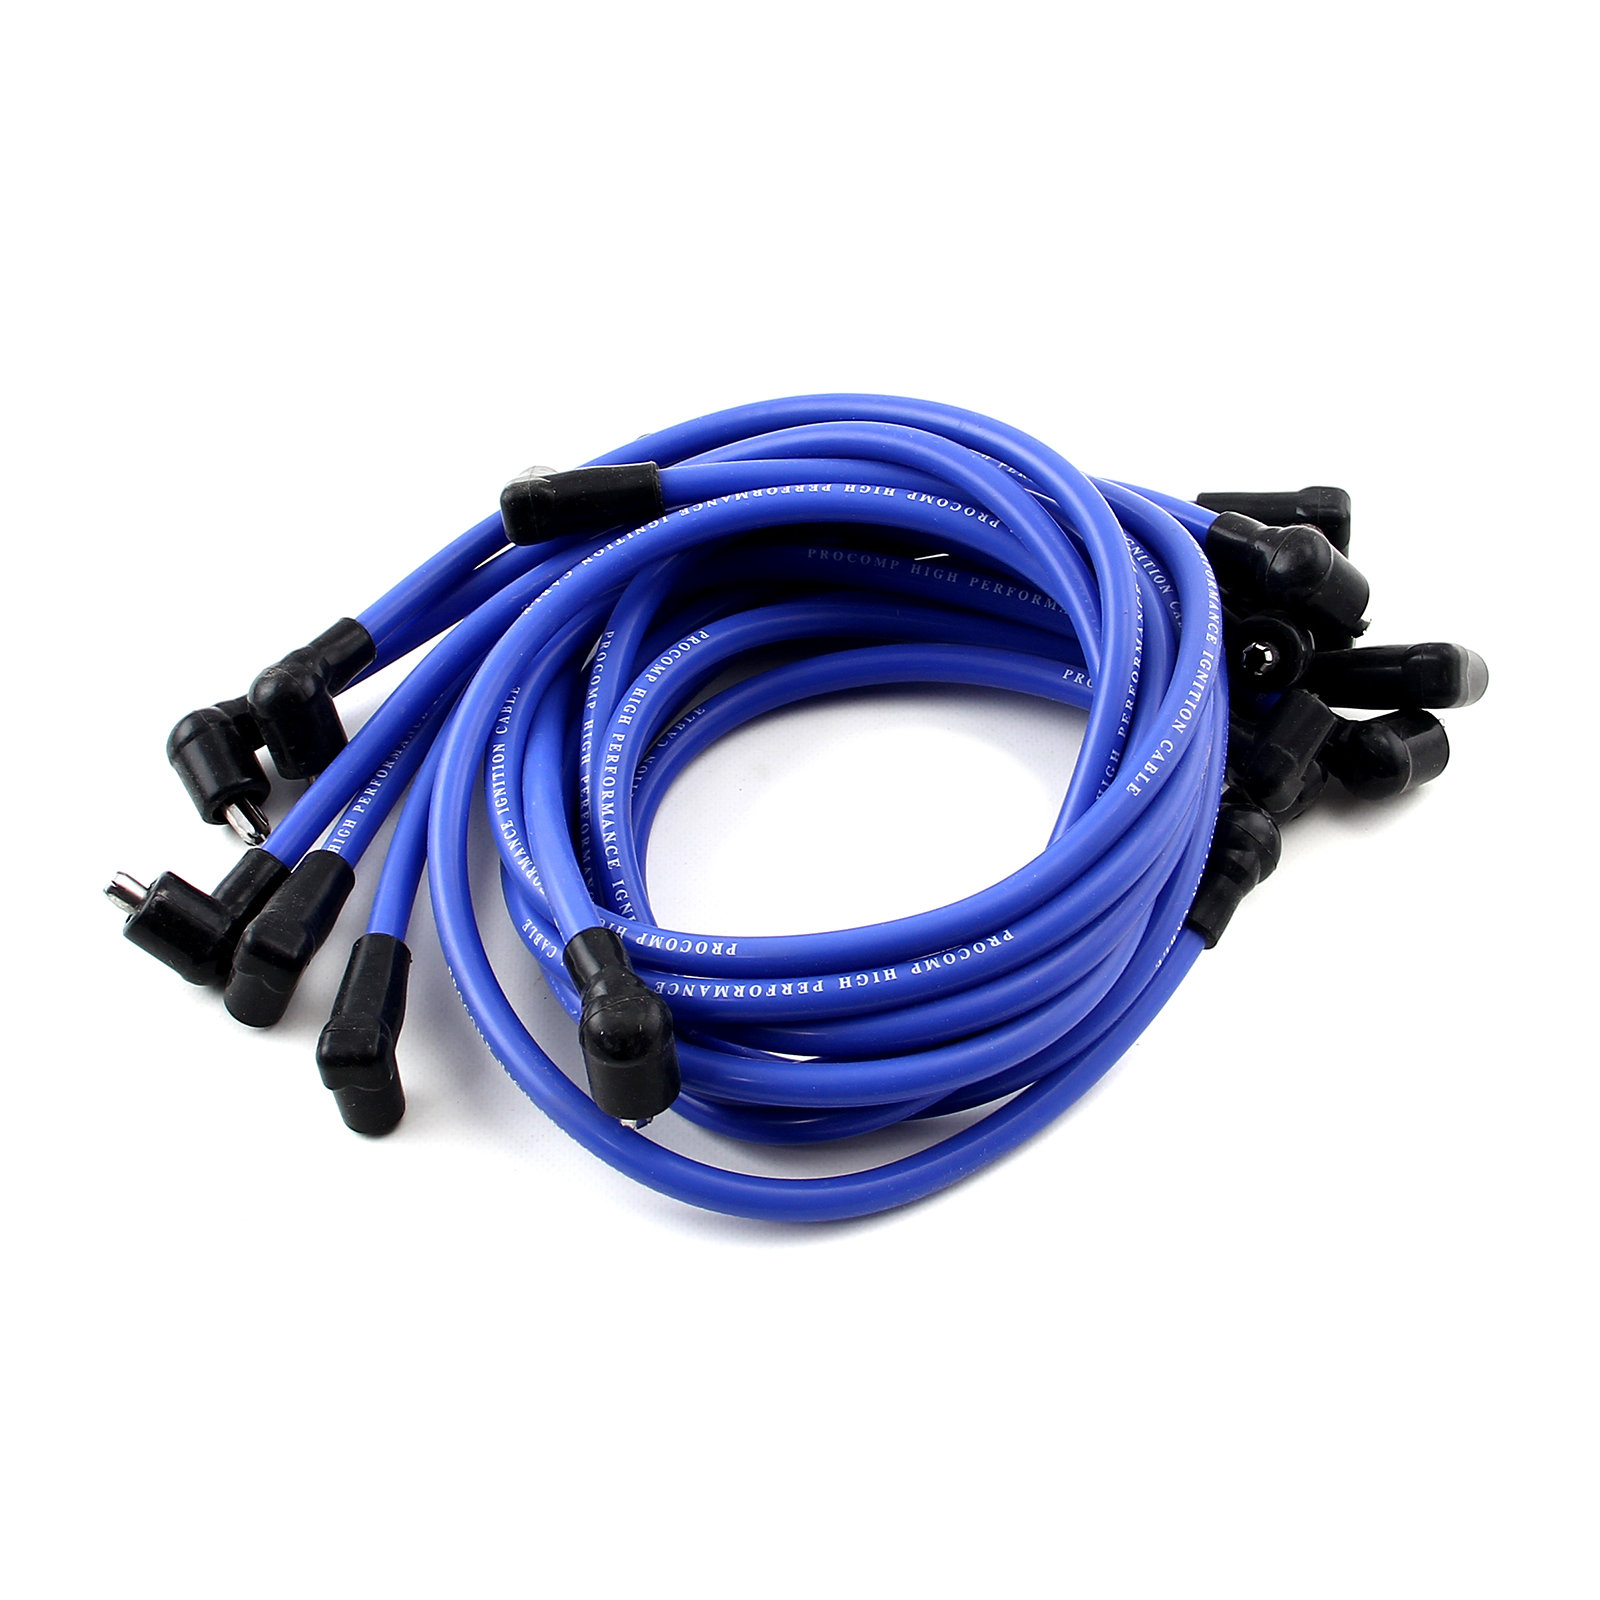 Universal 90 Deg to 90 Deg Under Covers Female Blue Spark Plug Wires Suits Chevy